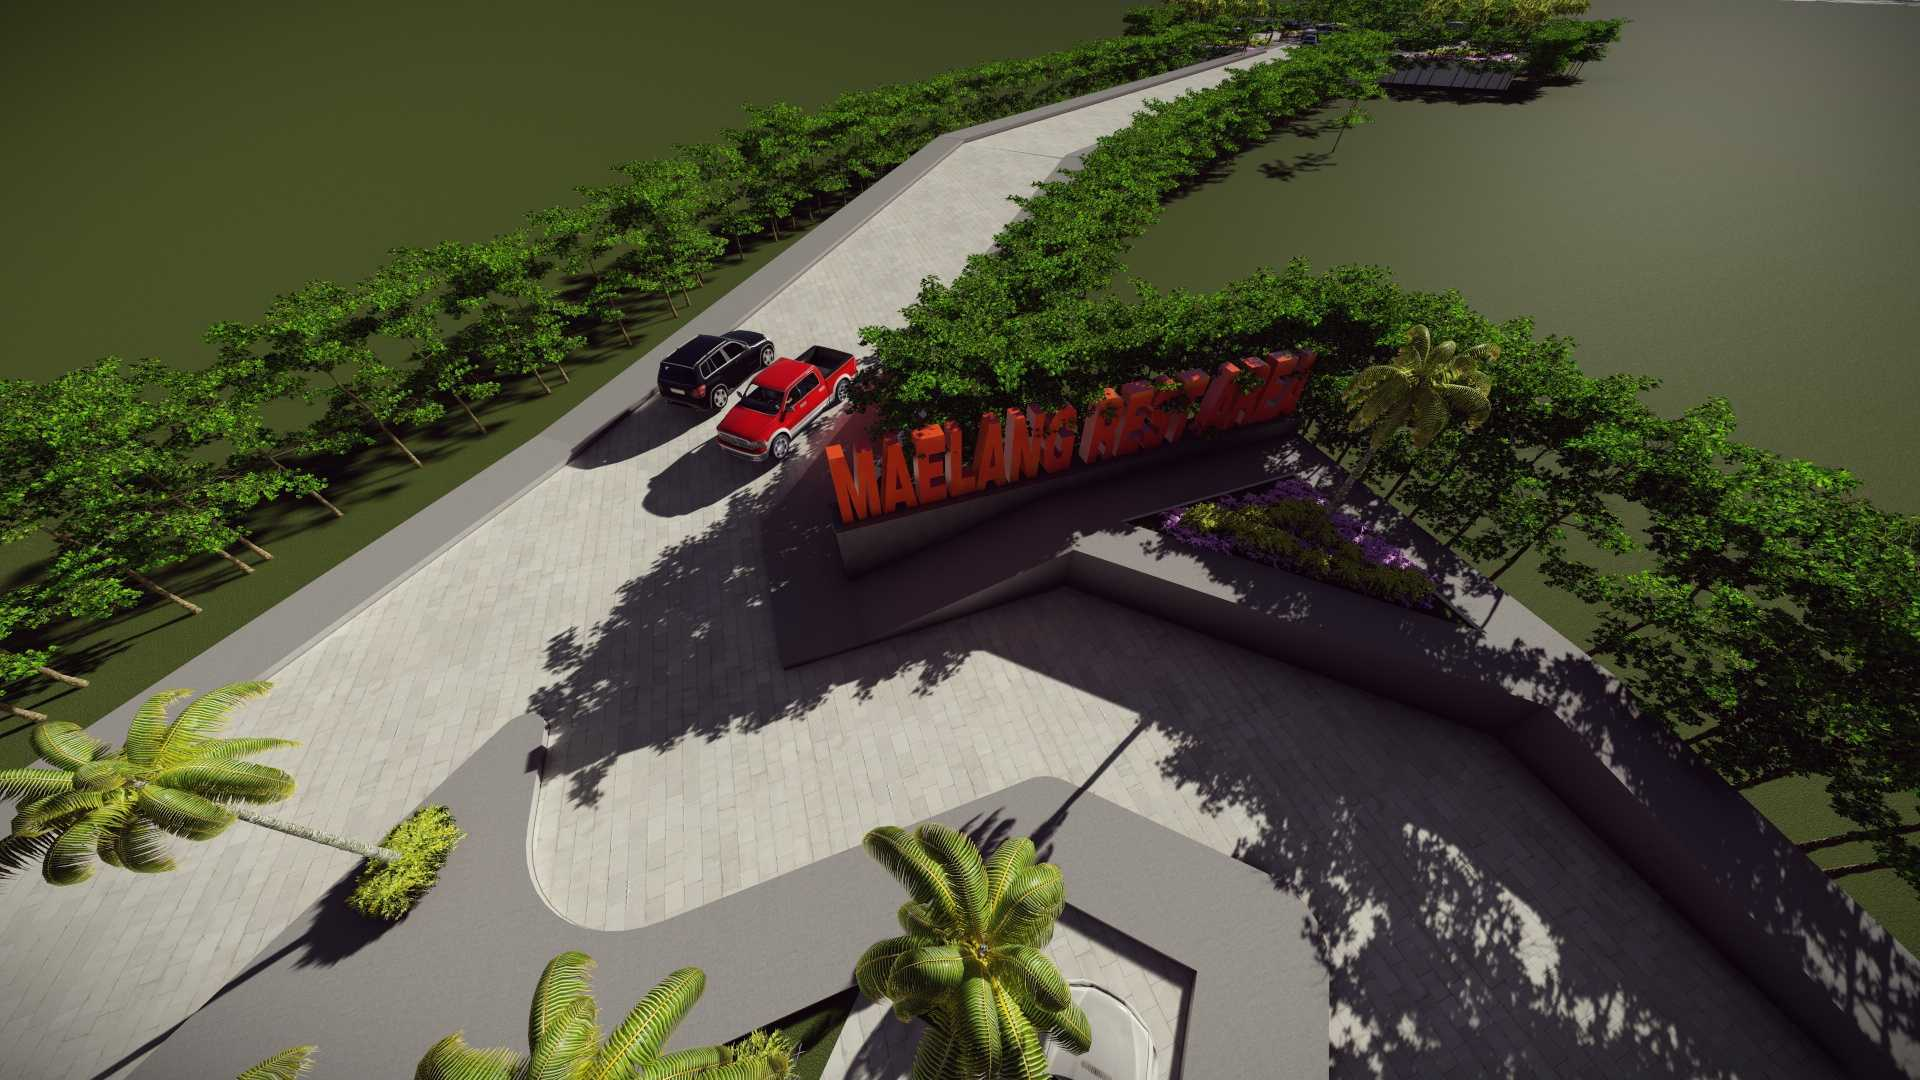 Mannor Architect Maelang Parking Area Gorontalo, Indonesia Gorontalo, Indonesia Bird Eye View   40752